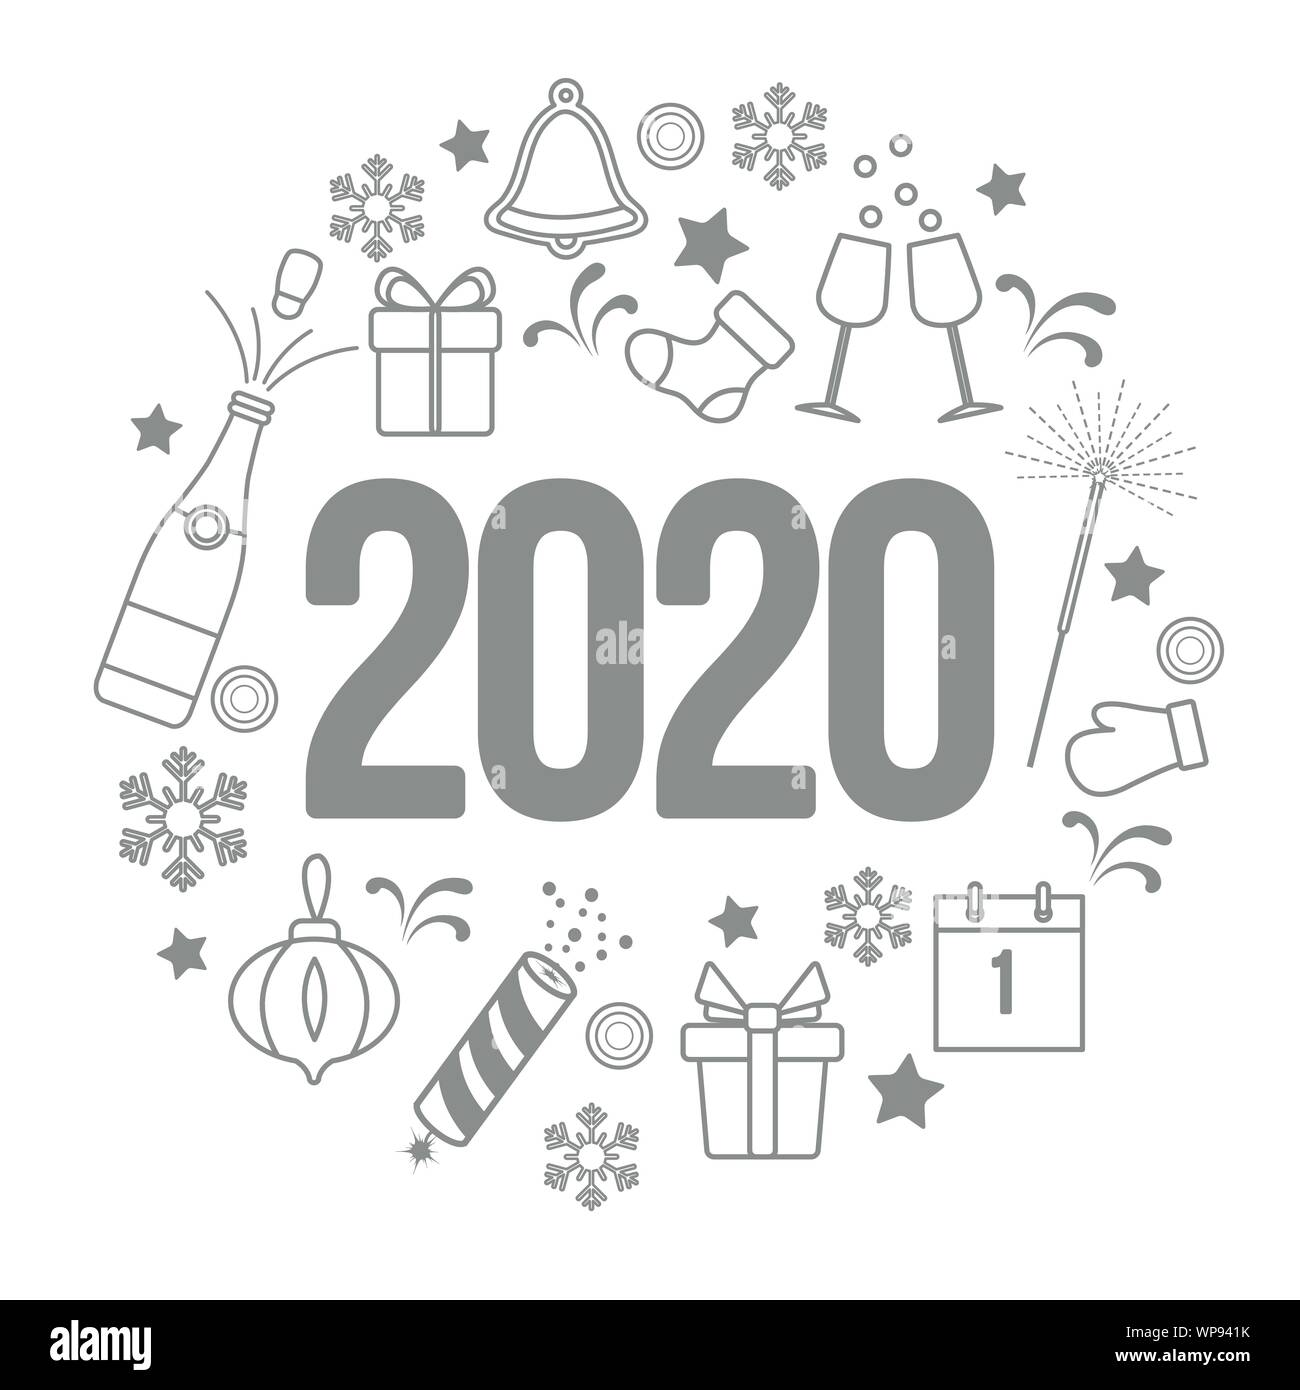 happy new year 2020 card gift boxes bottle glasses christmas sock gingerbread bell poppers sparkler mitten calendar snowflakes design for p stock vector image art alamy https www alamy com happy new year 2020 card gift boxes bottle glasses christmas sock gingerbread bell poppers sparkler mitten calendar snowflakes design for p image271878703 html